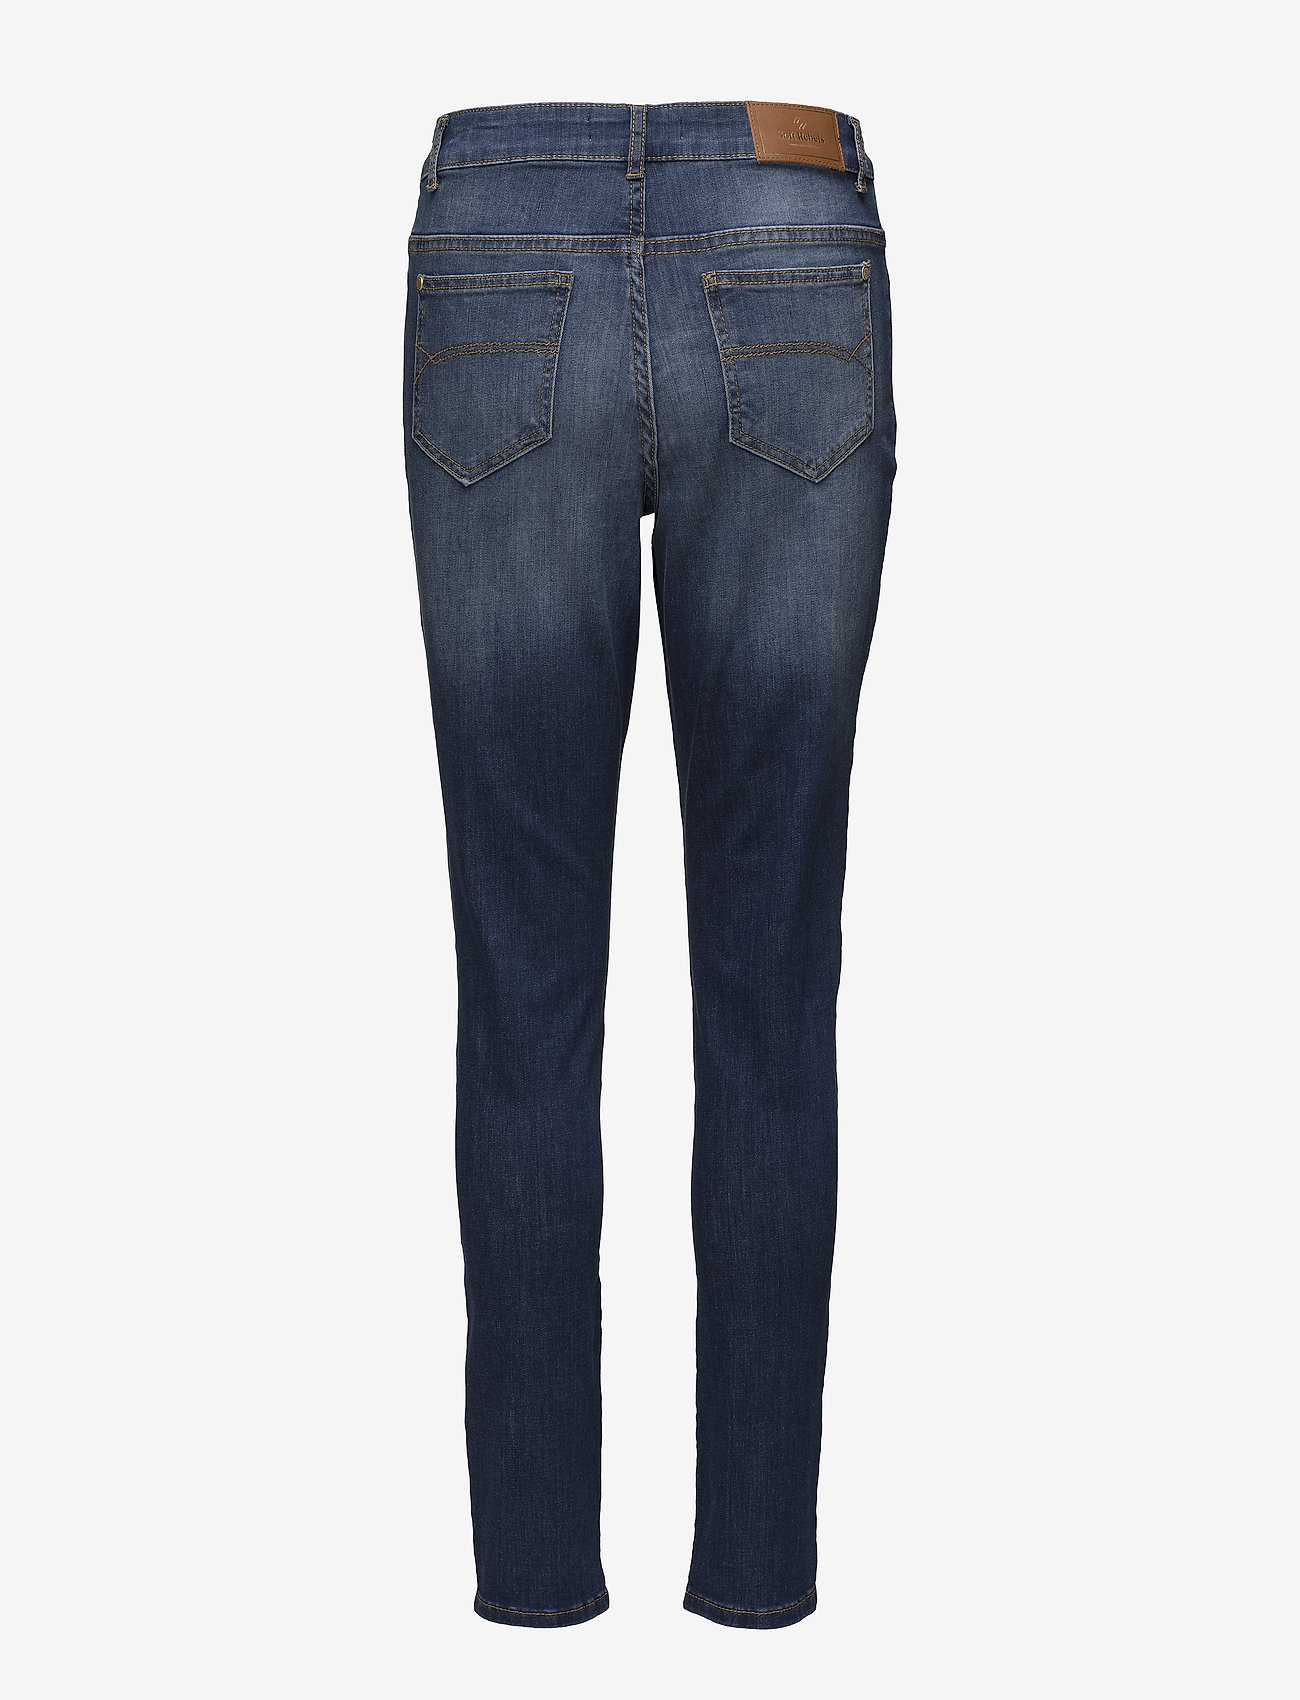 Soft Rebels - Cassy Boyfriend Pant - dżinsy chłopaka - 776 dark wash - 1